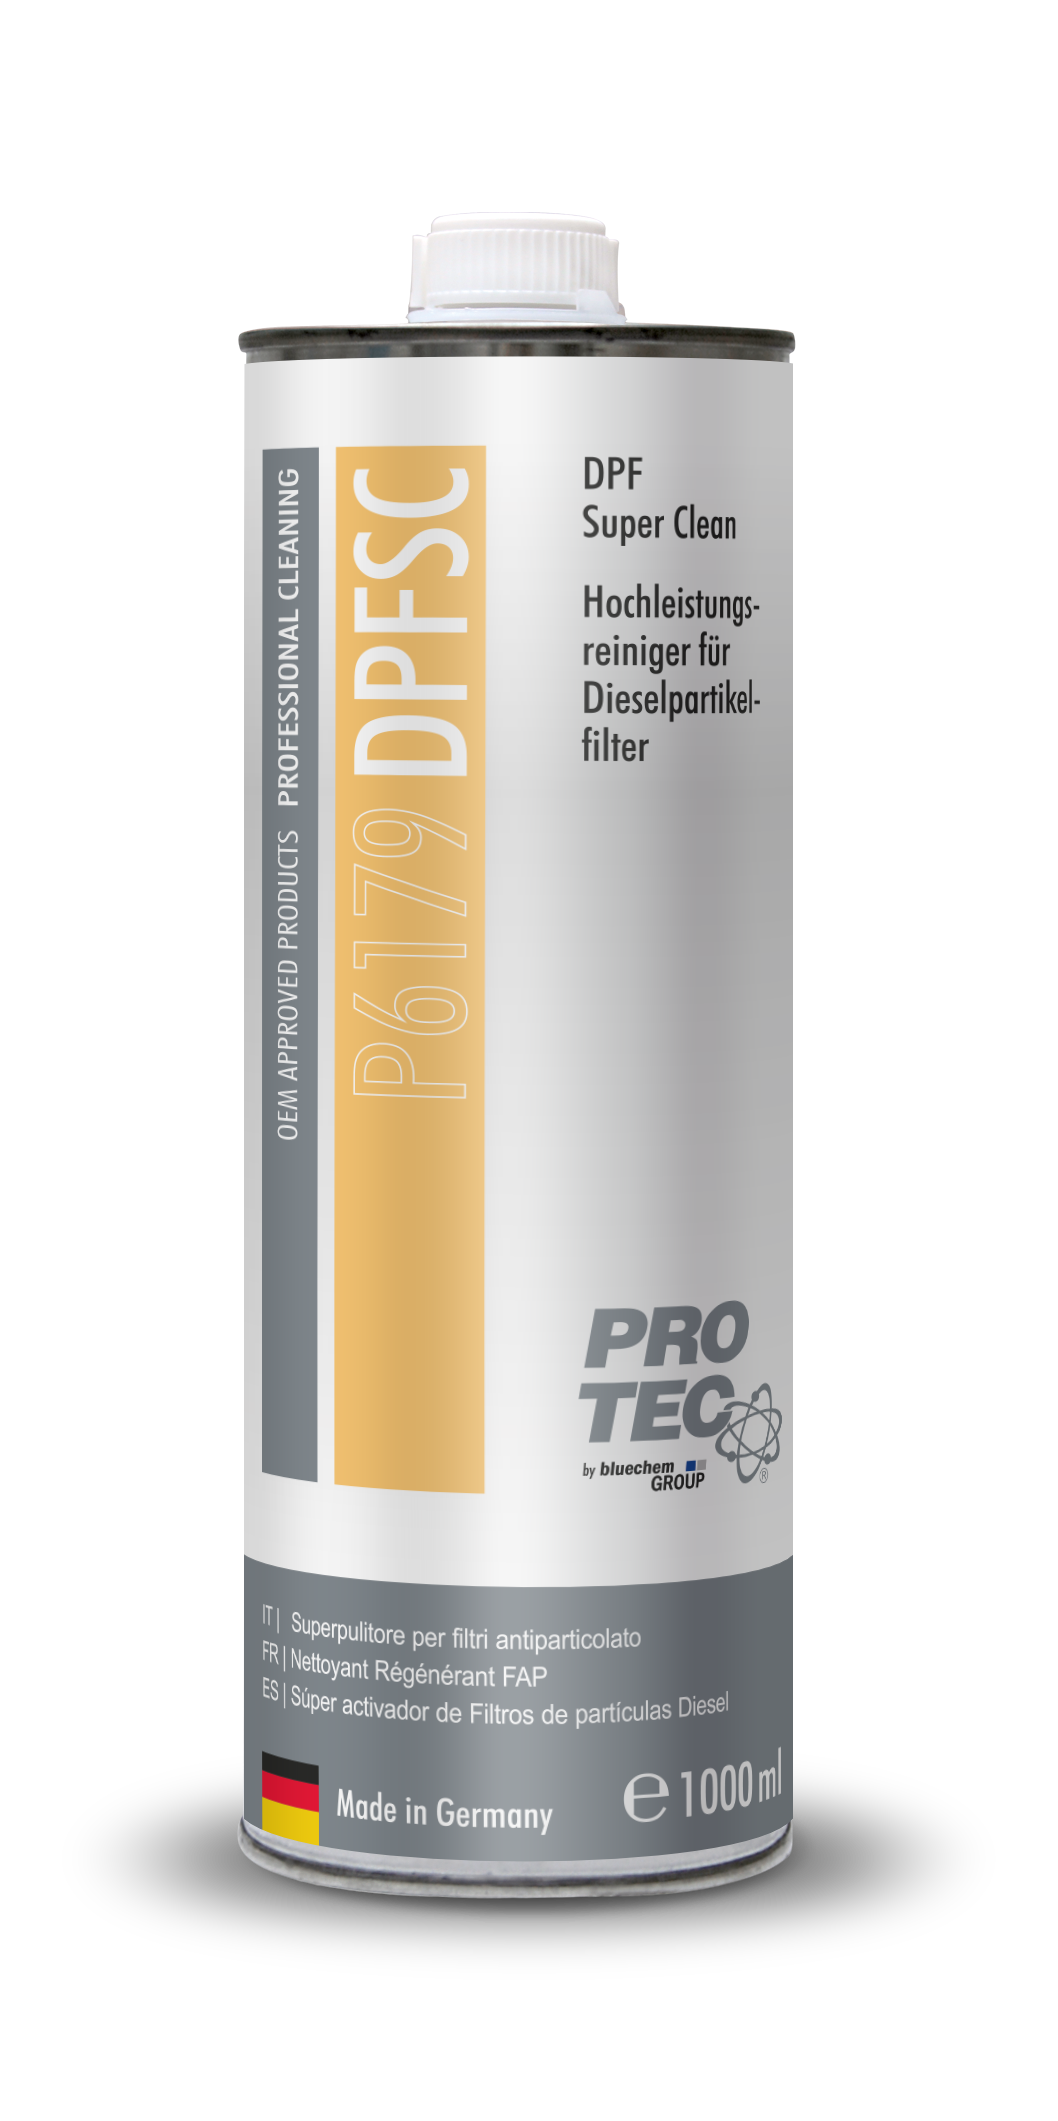 Pro-Tec DPF Super cleaner (375ml)